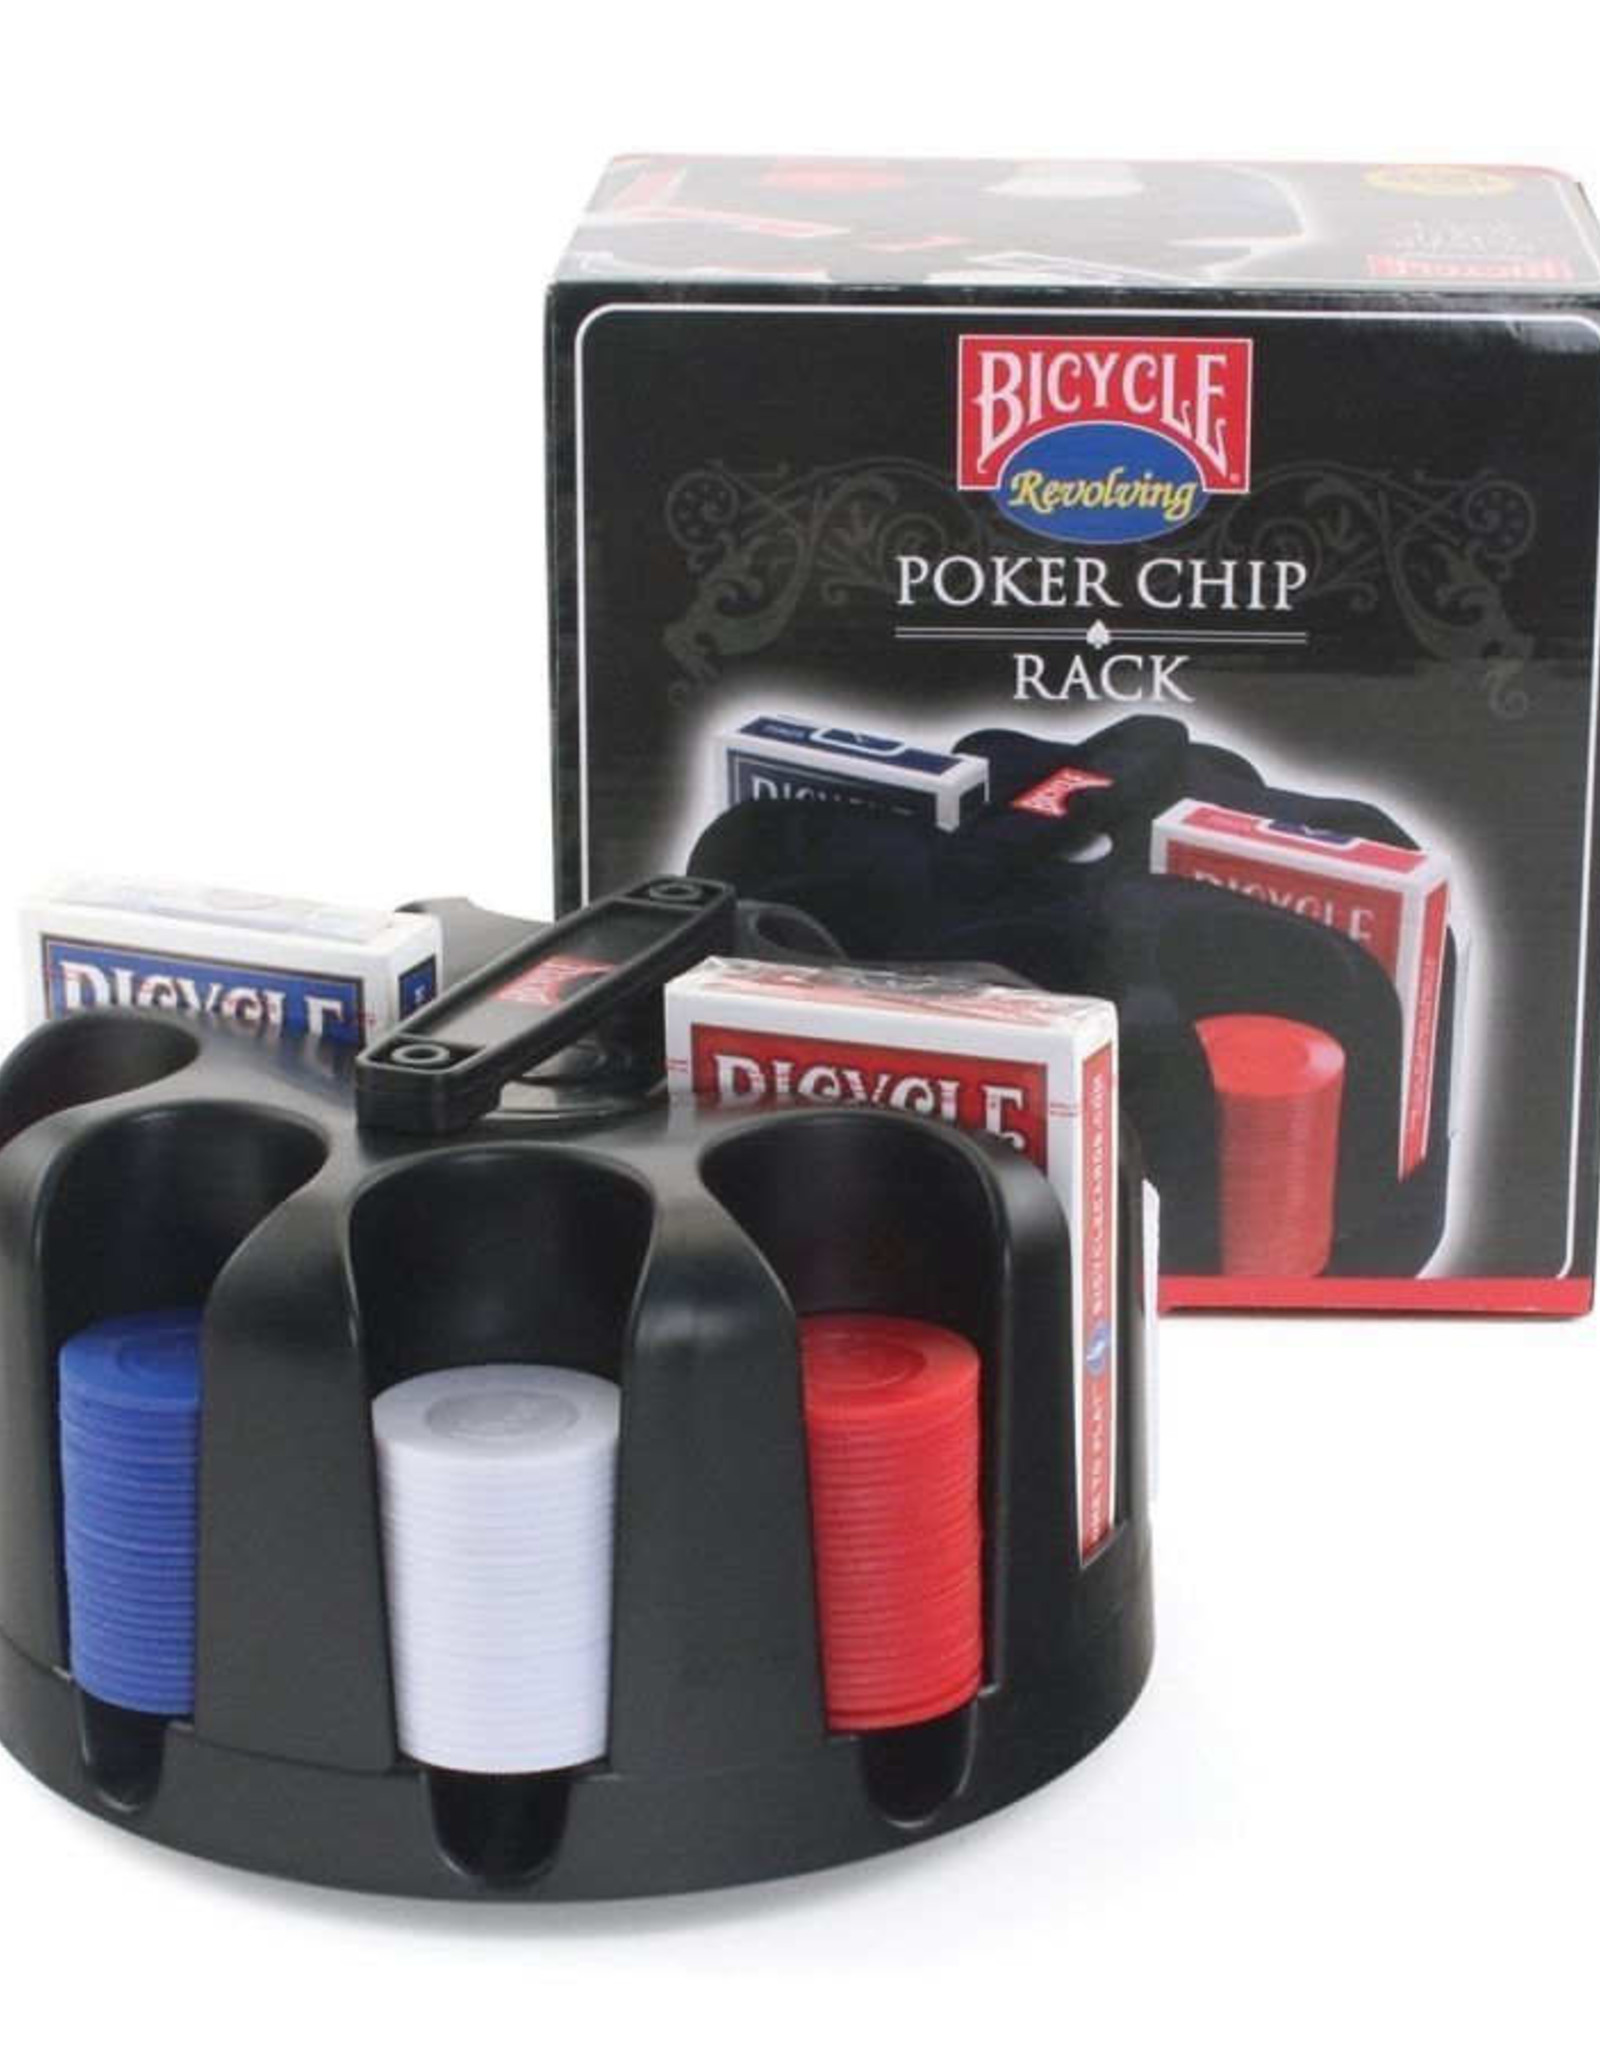 United States Playing Card Co Poker Chip Rack